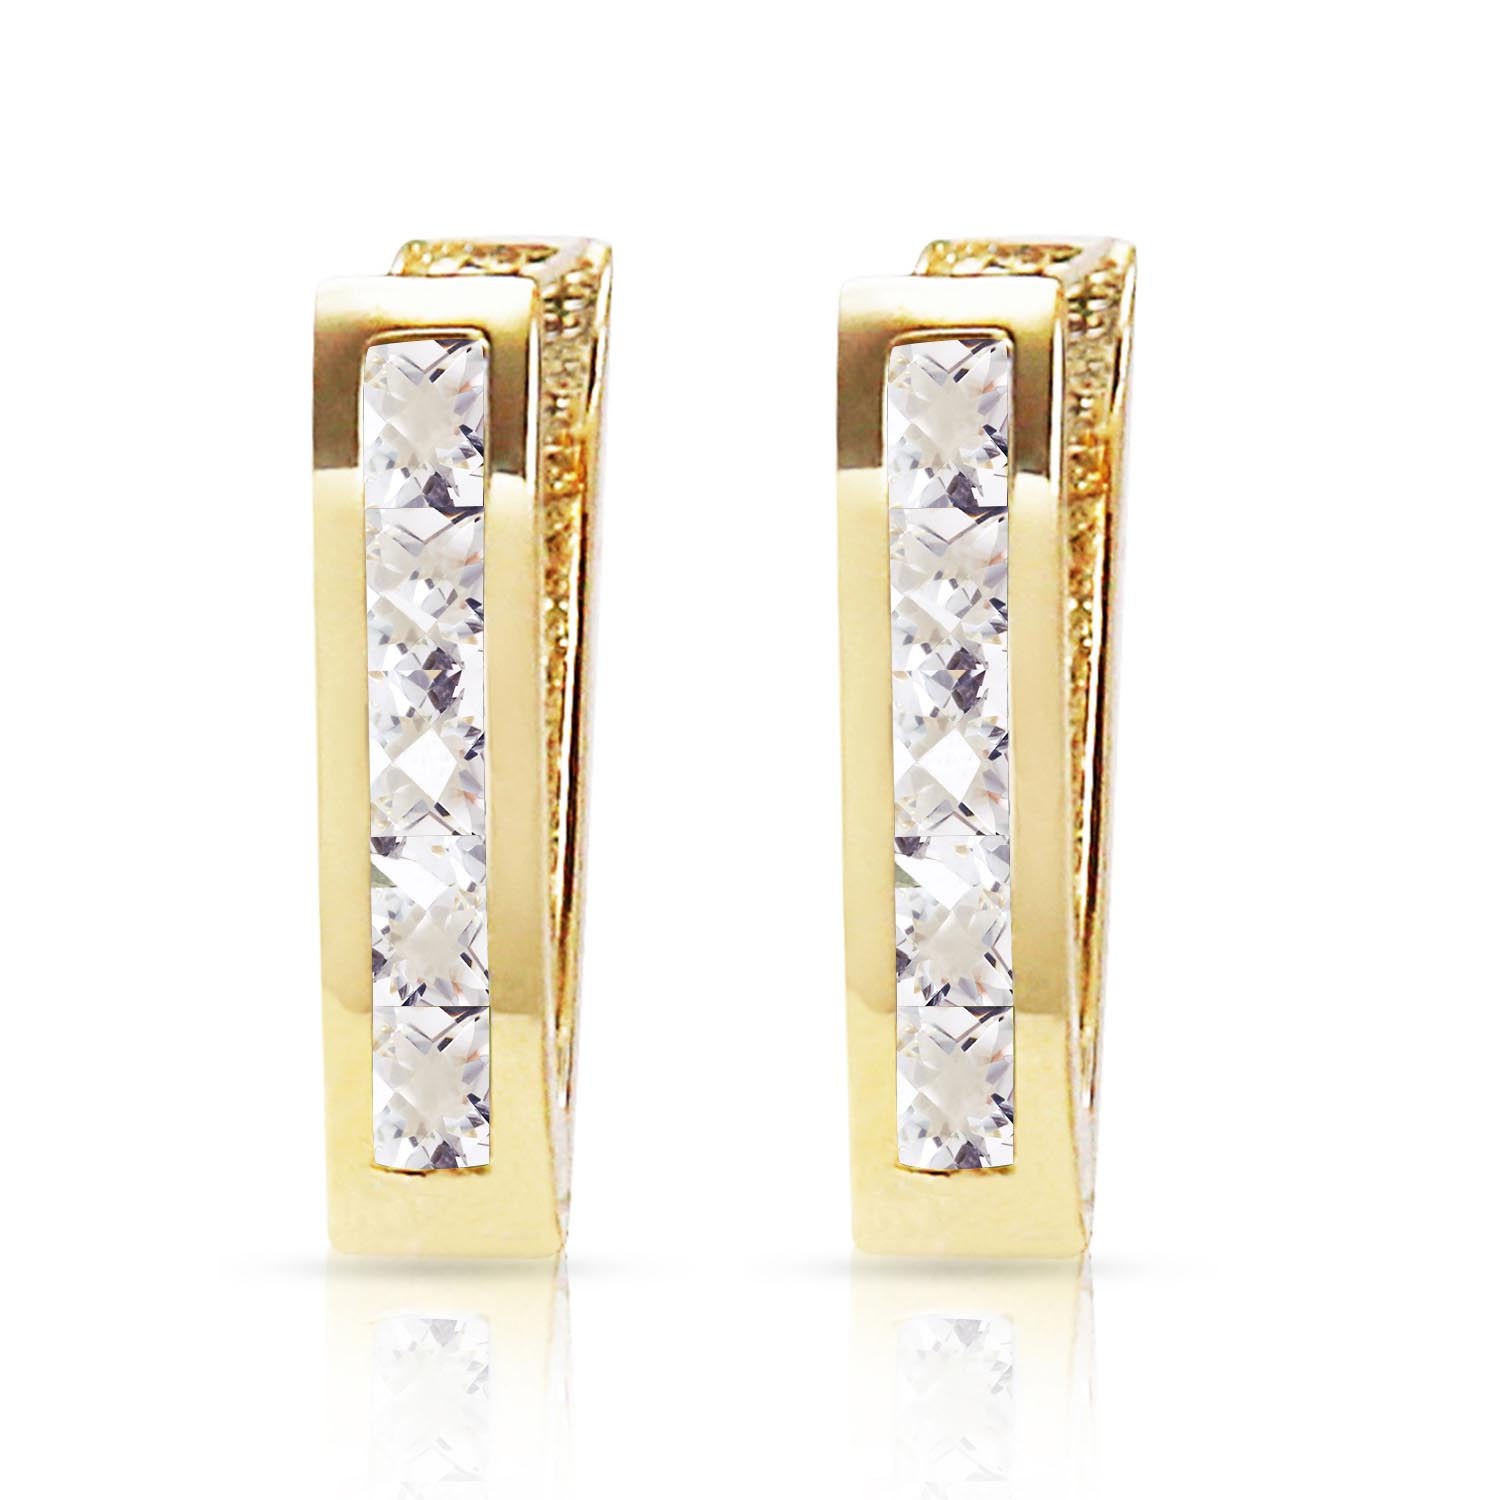 White Topaz Acute Huggie Earrings 1.2ctw in 9ct Gold